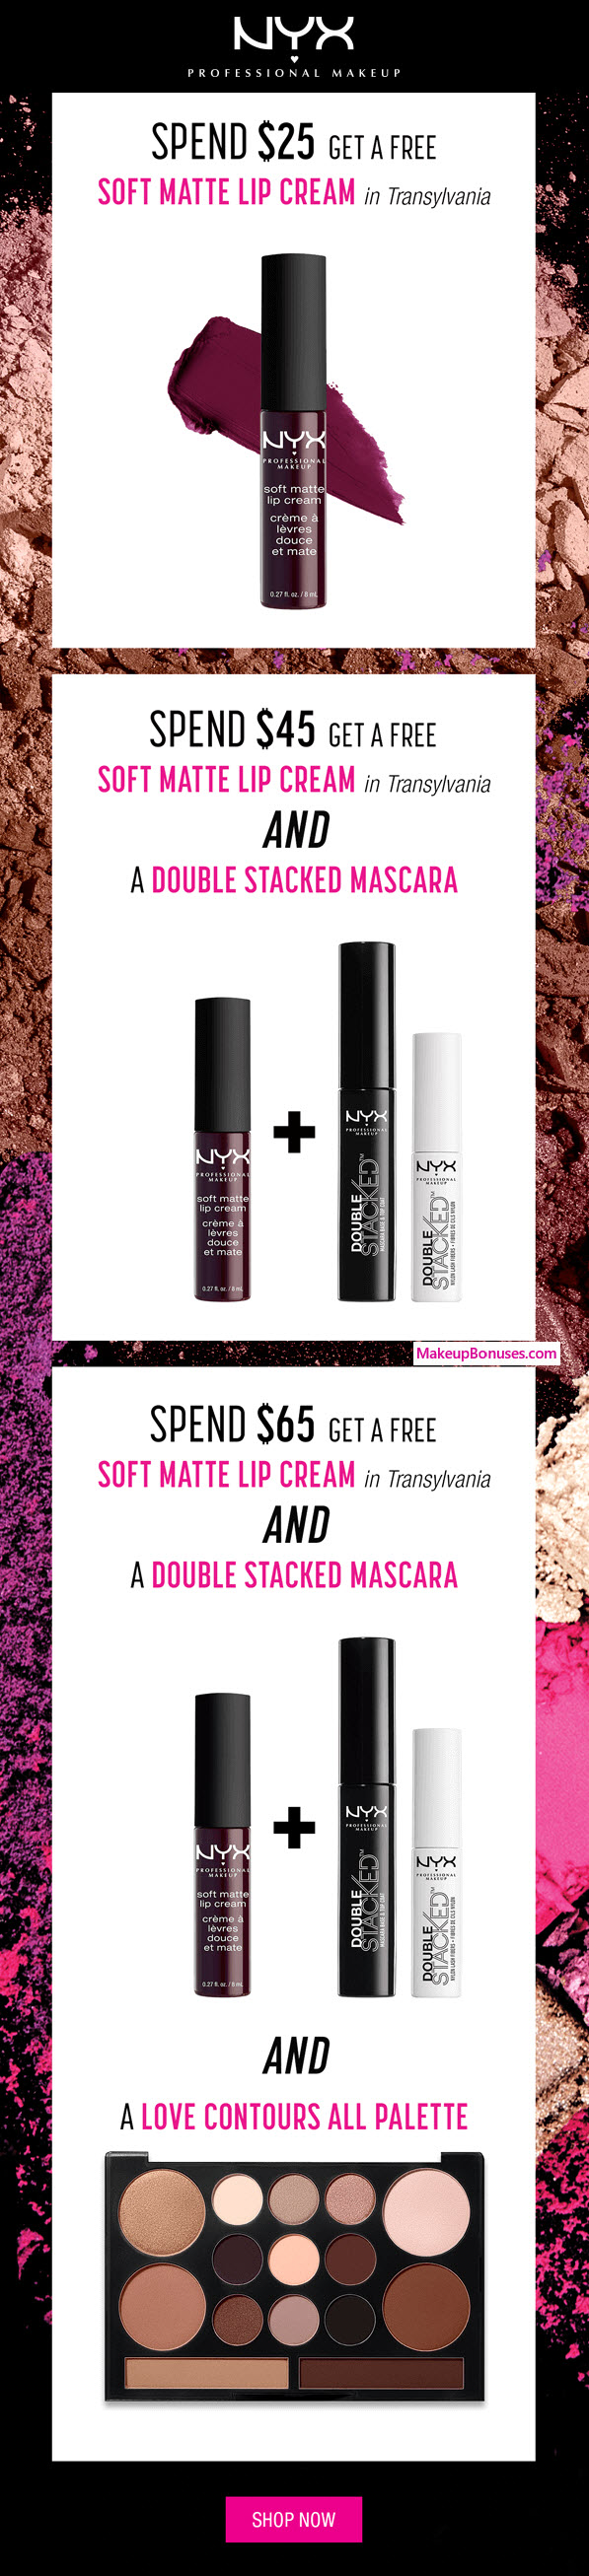 Receive a free 4-pc gift with your $65 NYX Cosmetics purchase